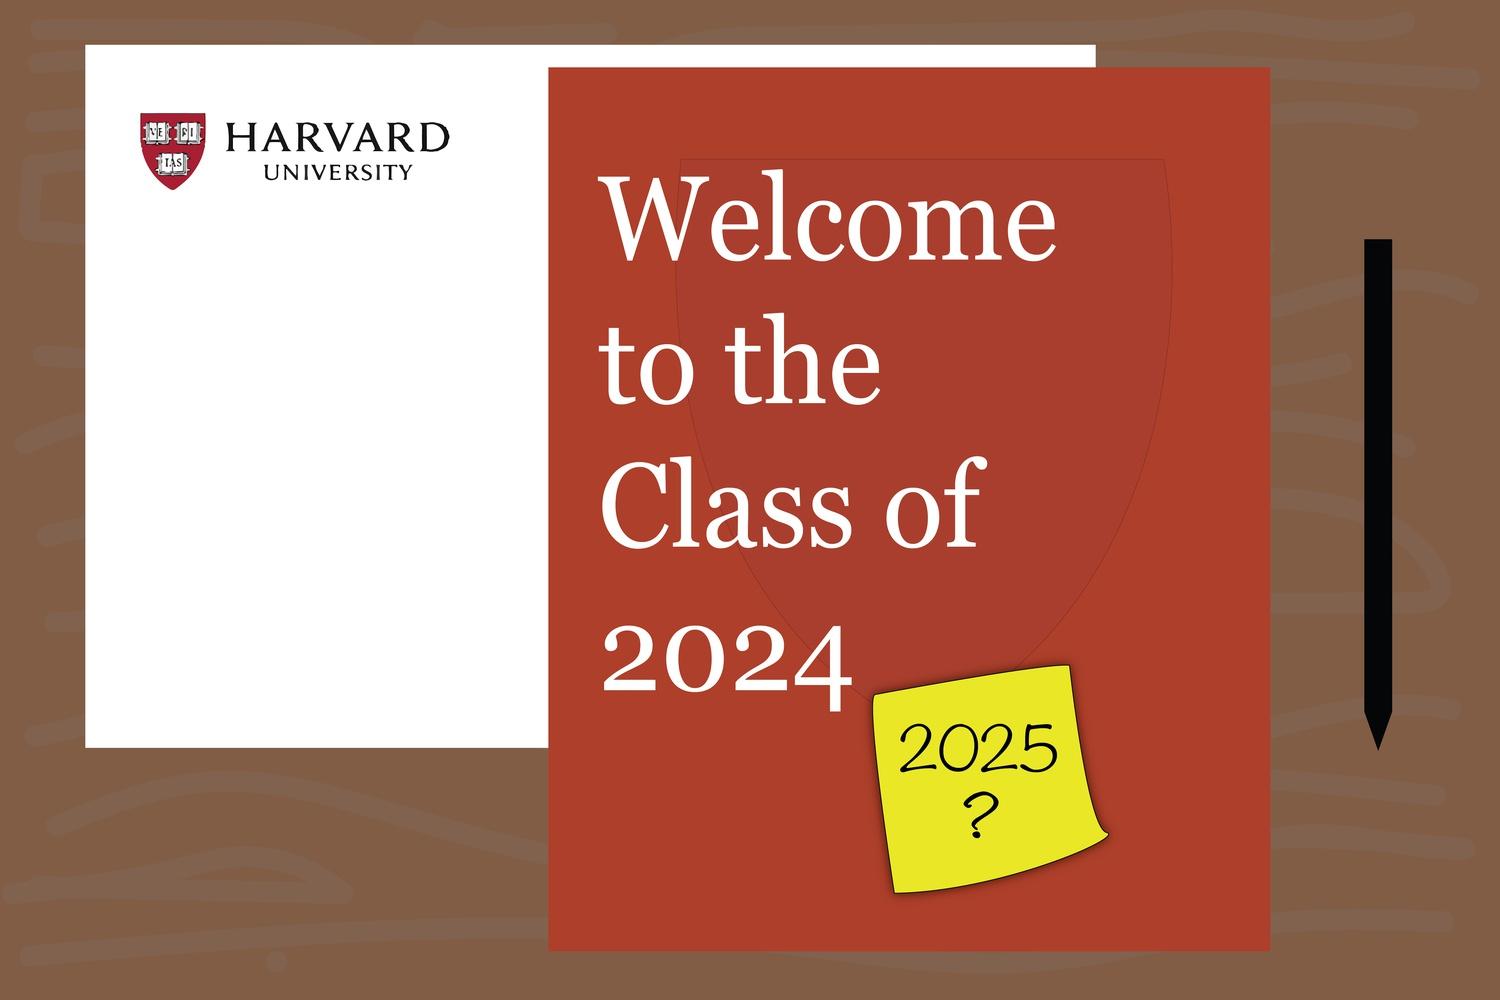 As the nature of the fall semester remains in flux, some prospective Harvard freshman are weighing gap years.